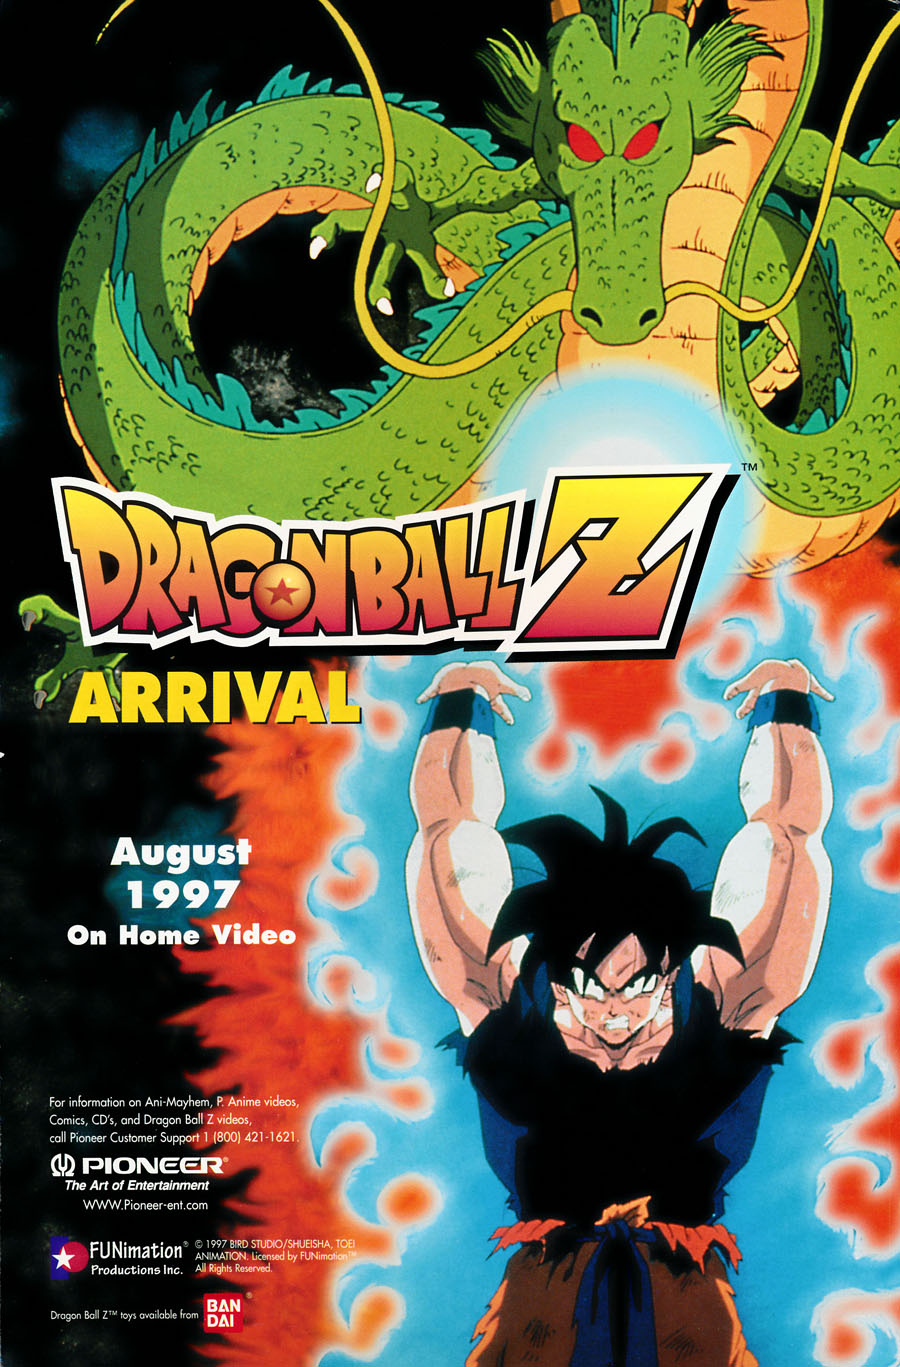 Dragonball-Z-VHS-Ad-First-August-1997-Pioneer-Funimation-anime